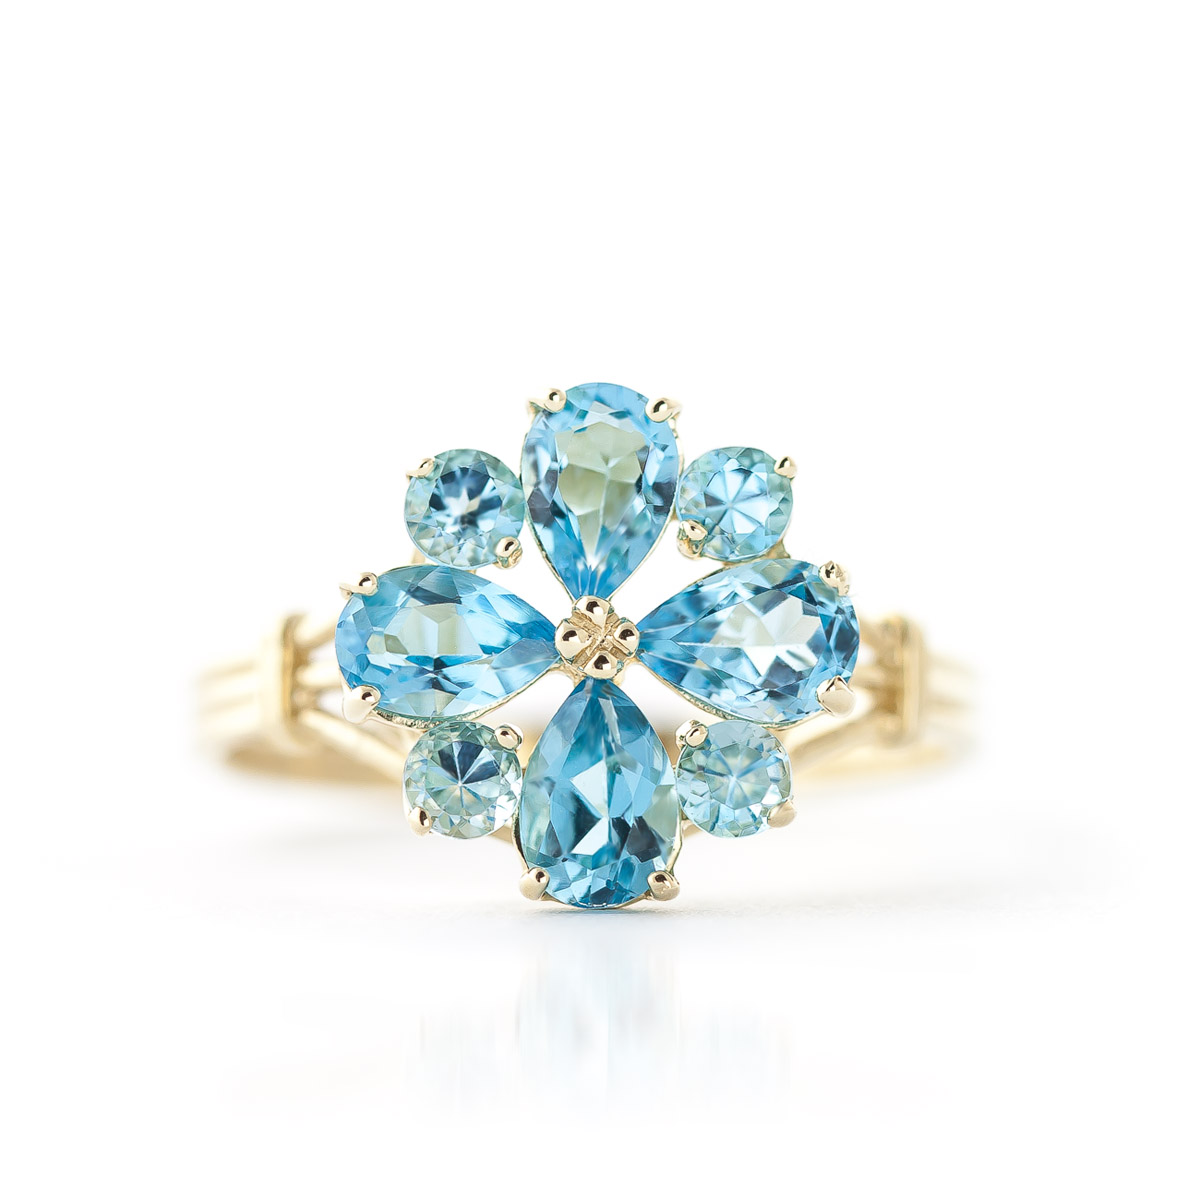 Blue Topaz Sunflower Cluster Ring 2.43ctw in 9ct Gold